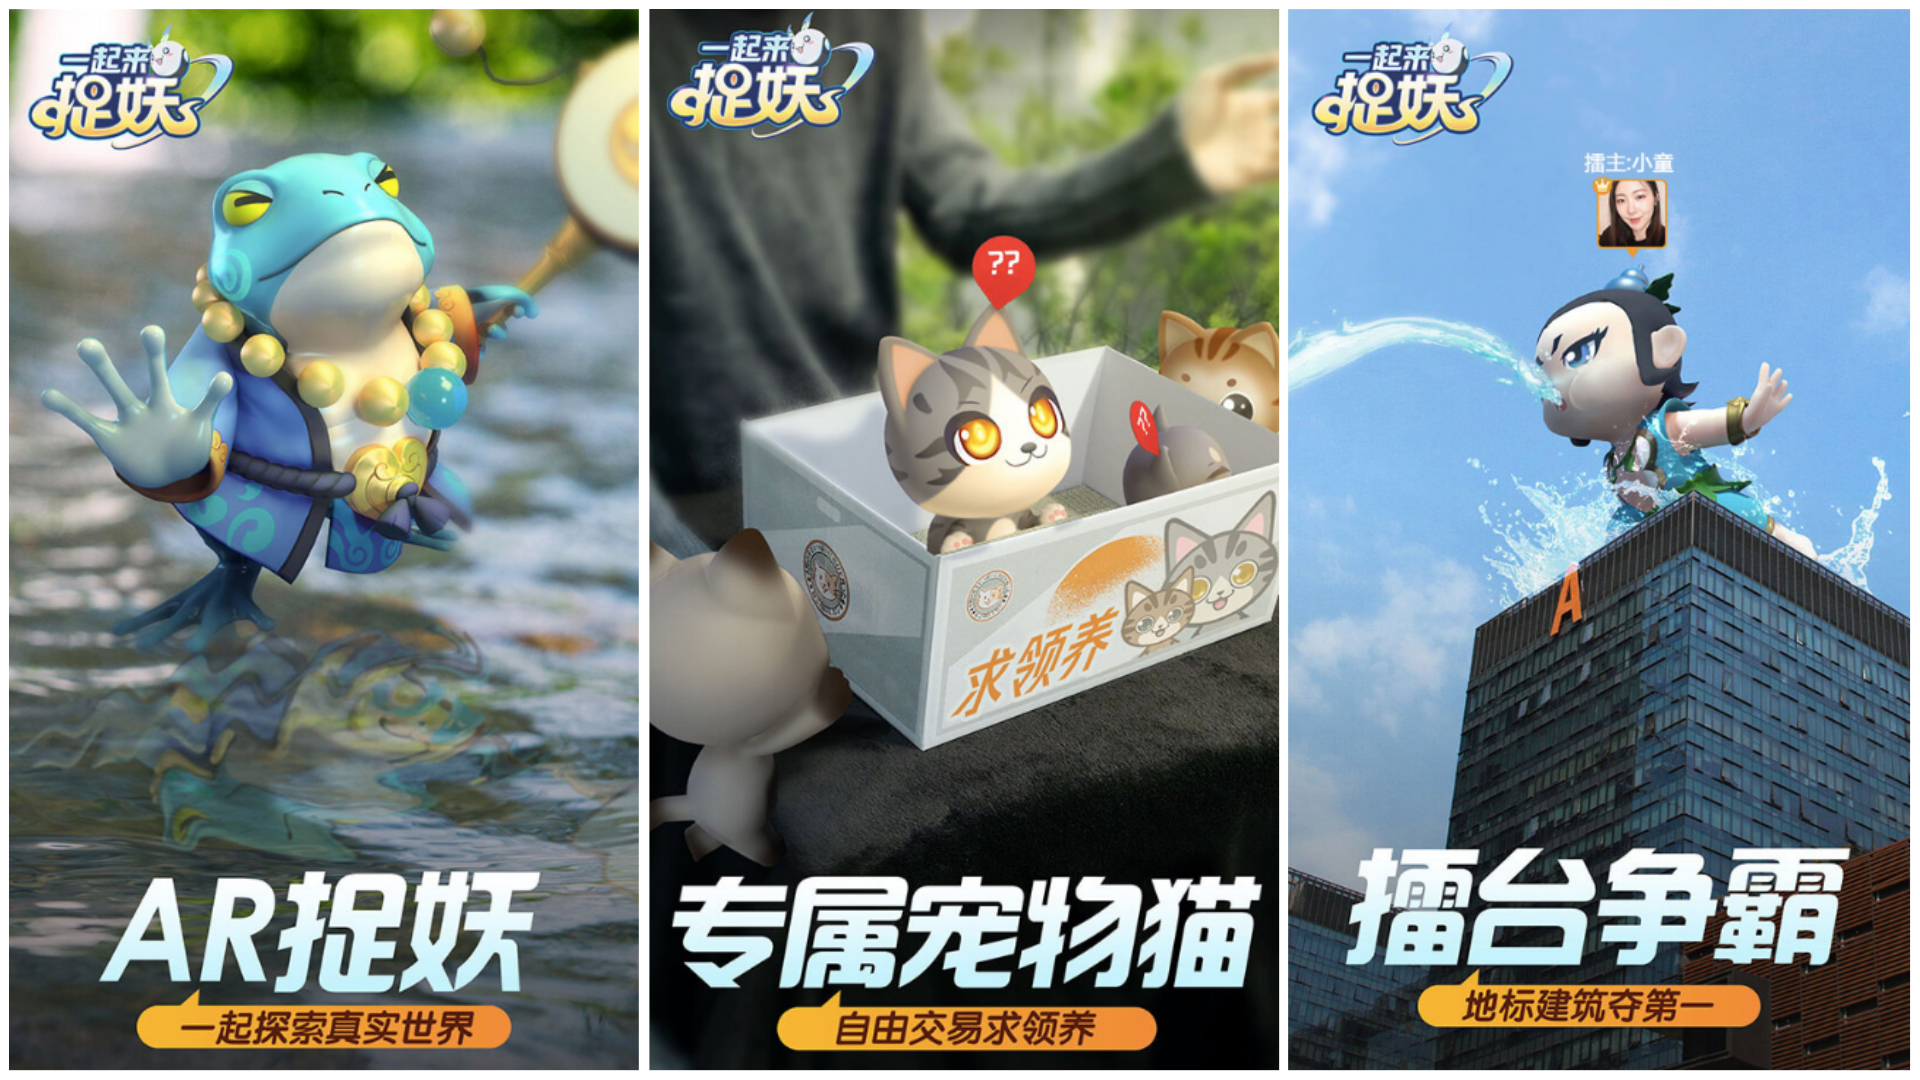 tencent s latest game merges cryptokitties and pokemon go - tencent games china fortnite